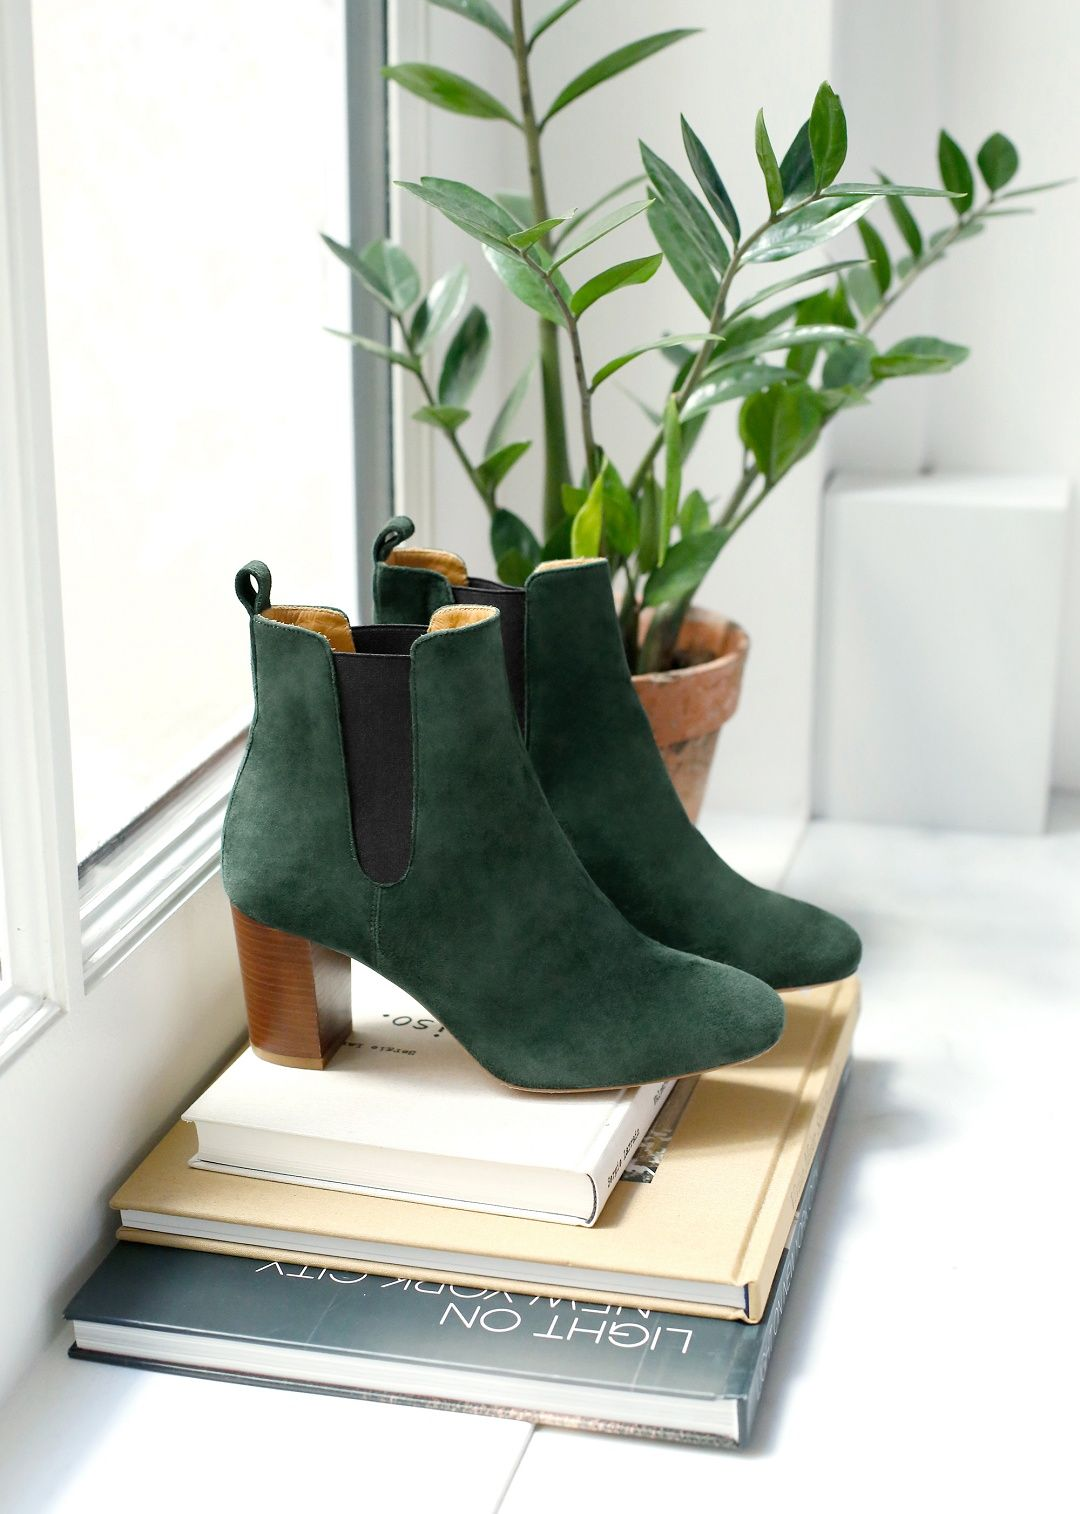 Noe High Heel Women Leather WInter Autumn Ankle Boots Shoes 4 inch Heel Green